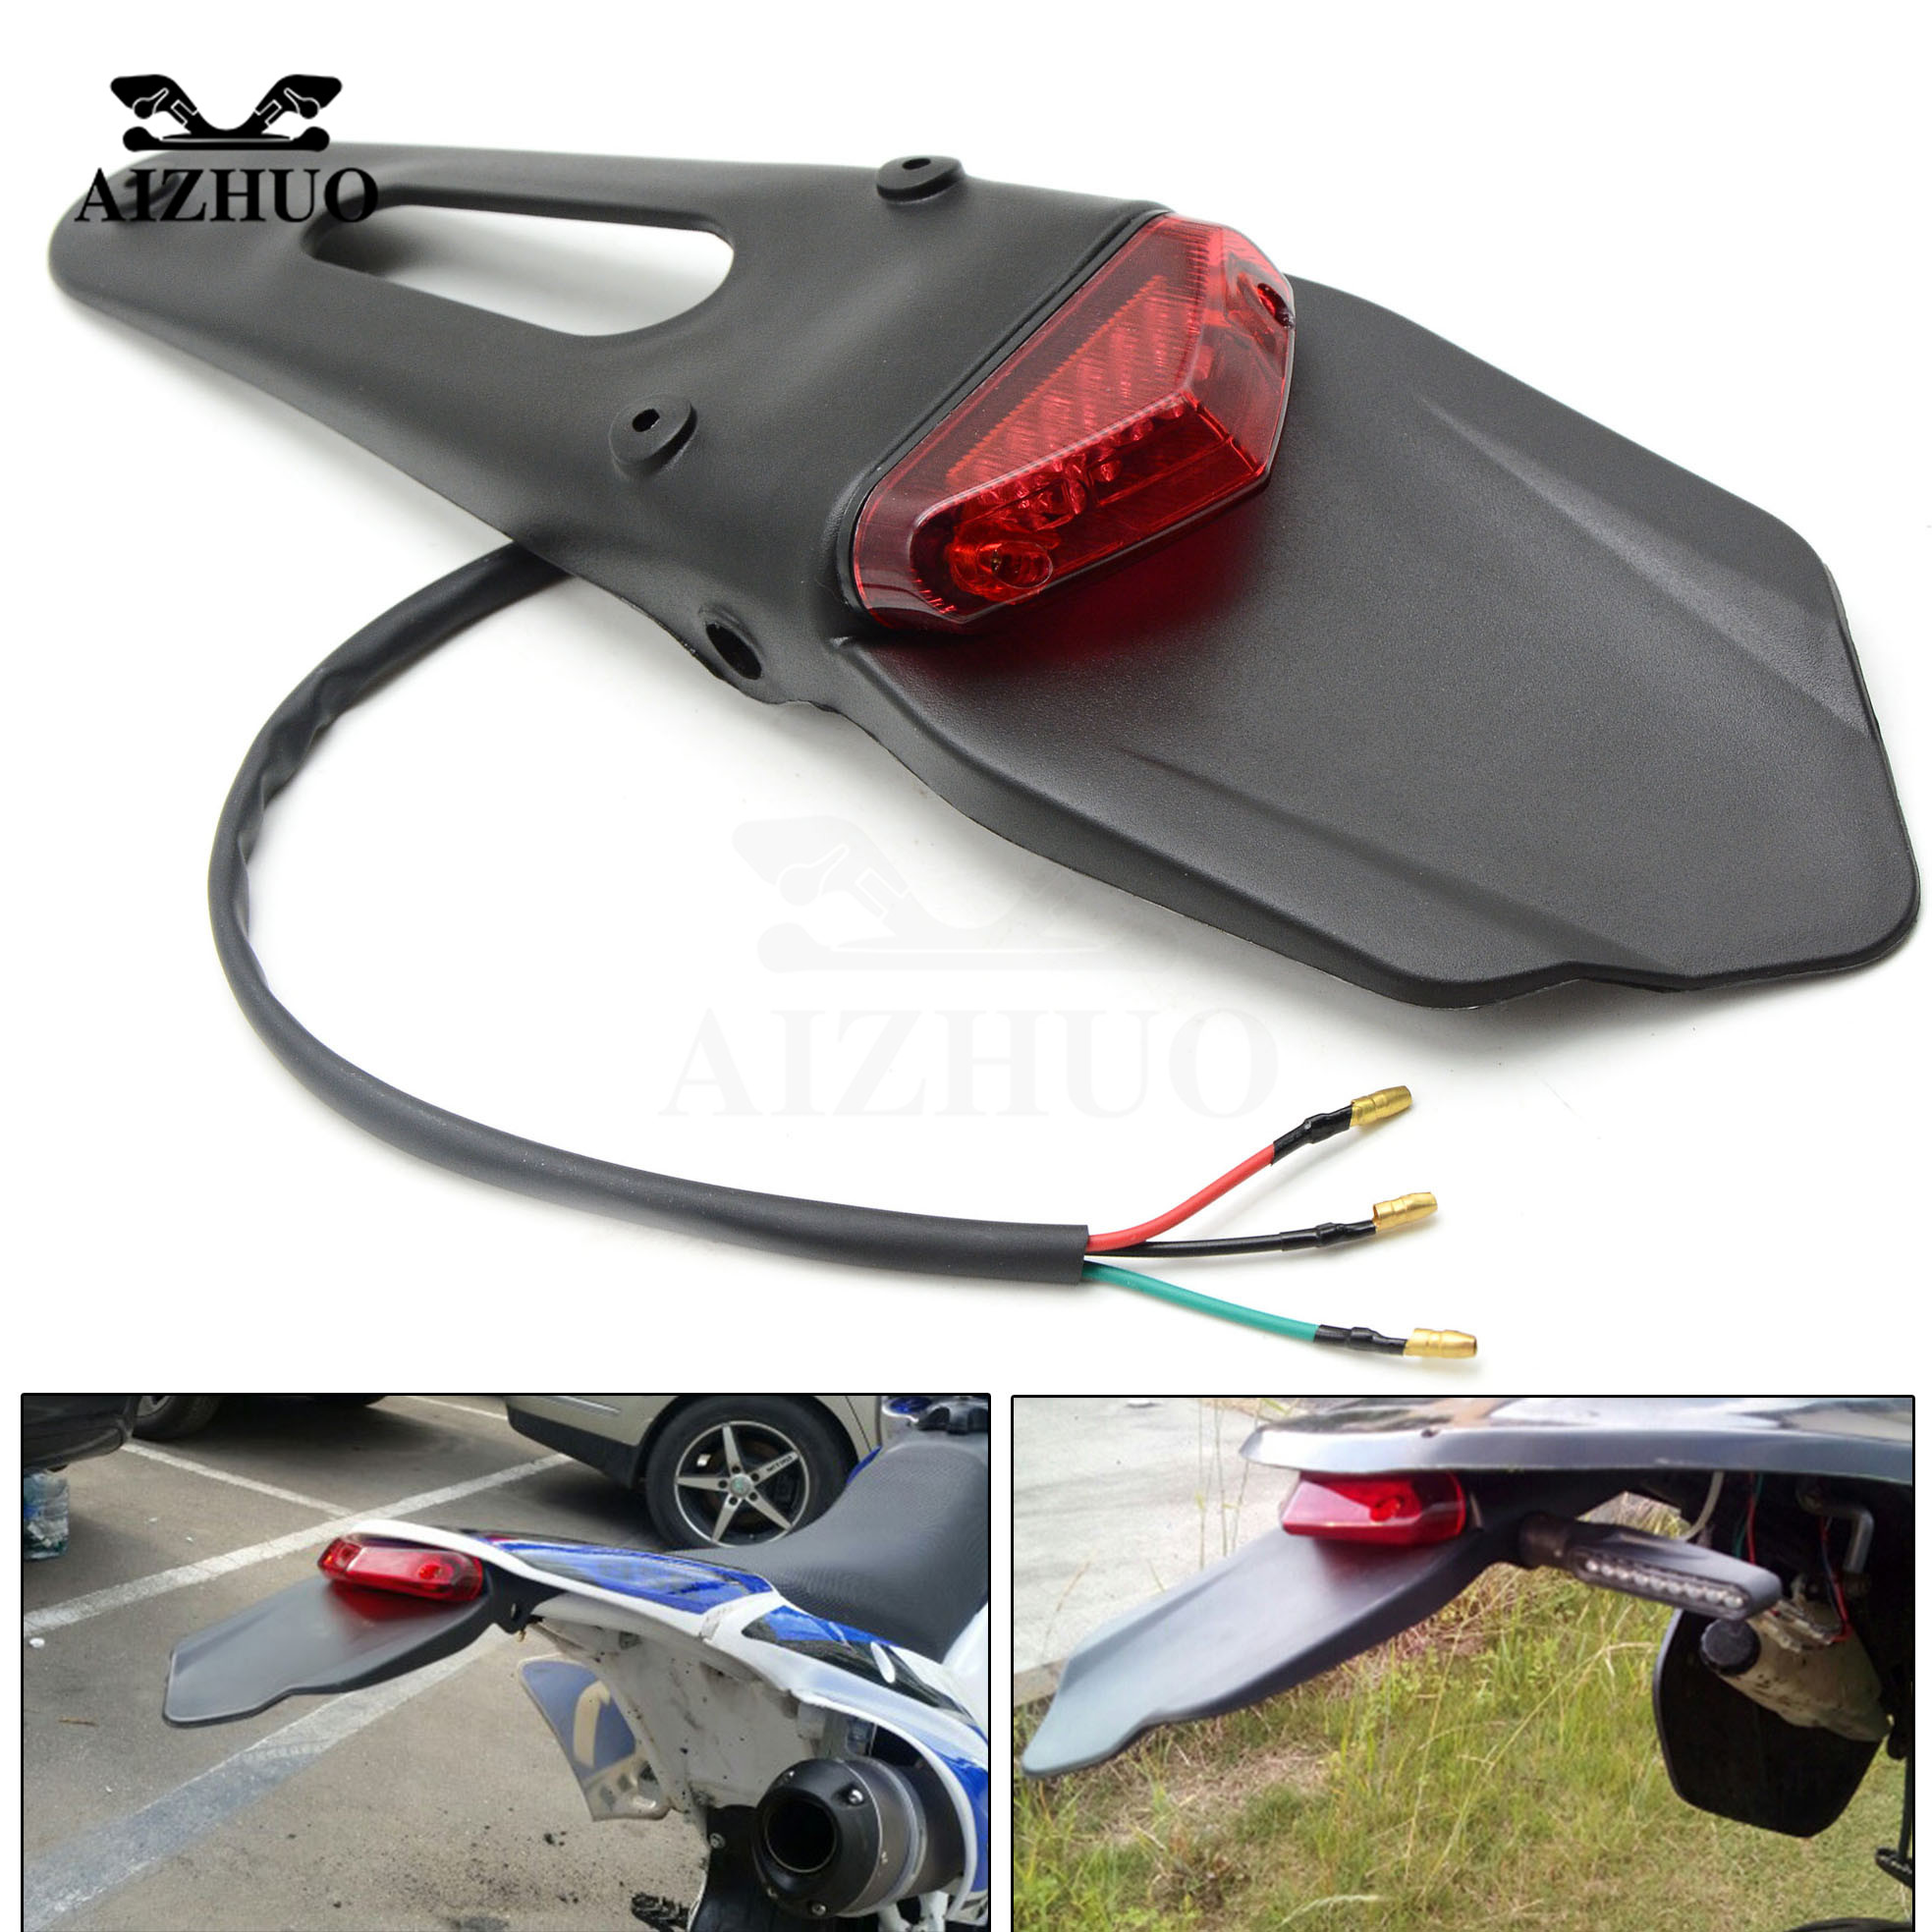 Motorcycle Rear Fender Stop Enduro Taillight Turn Signal For HONDA CR80R CR85R CRF150R CR125R KLX450R KDX125 250 KLX125 150S